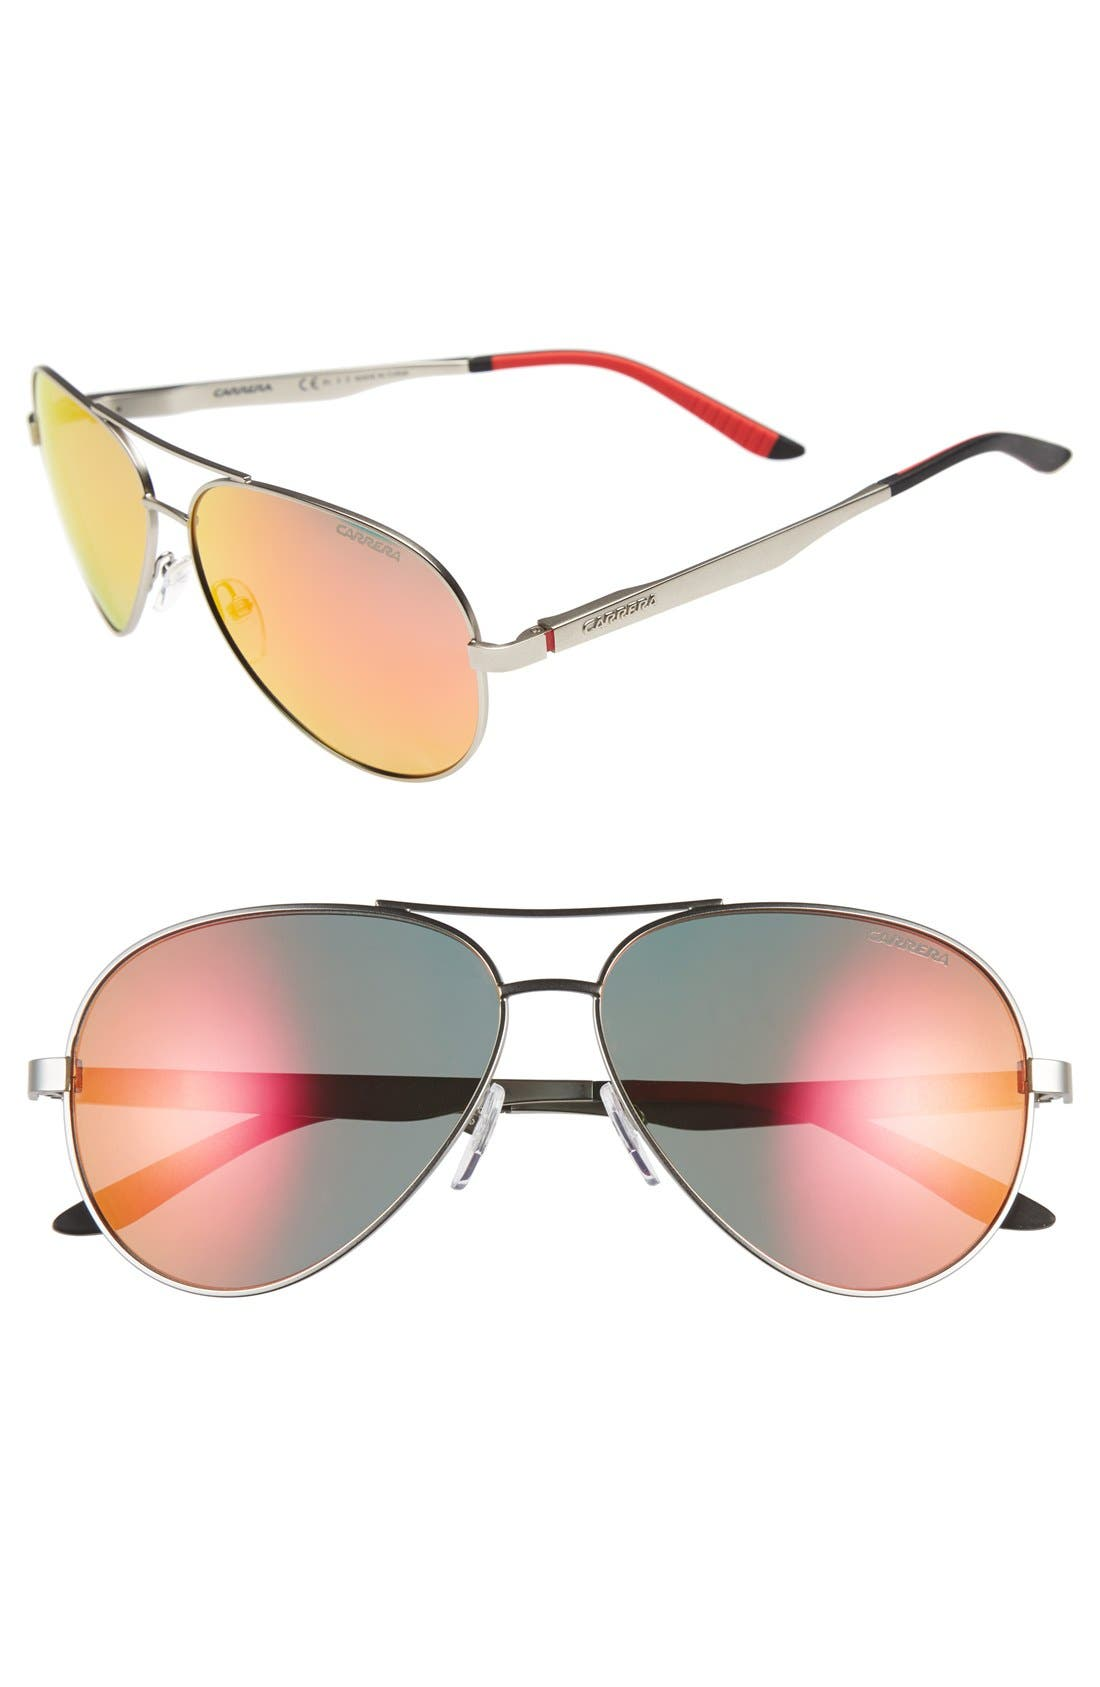 CARRERA EYEWEAR 59mm Metal Aviator Sunglasses